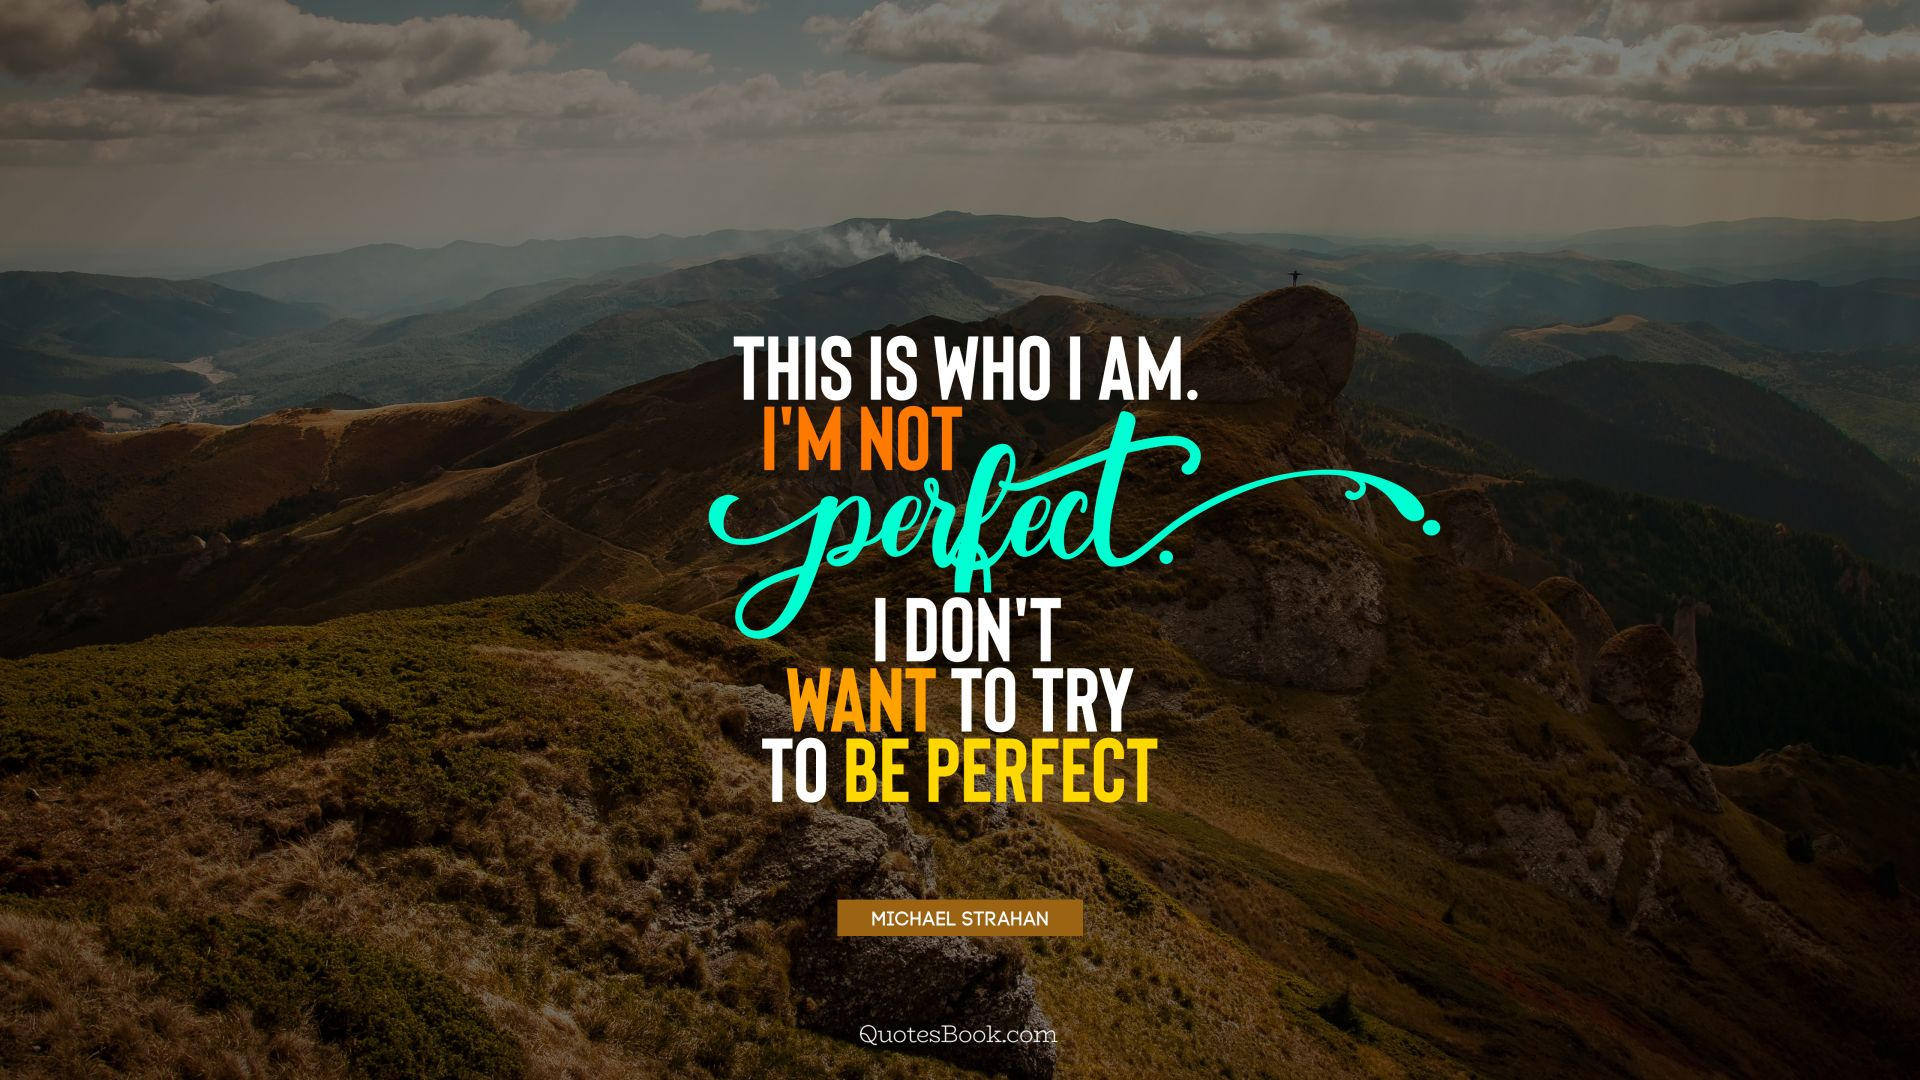 This is who I am. I'm not perfect. I don't want to try to be perfect. - Quote by Michael Strahan